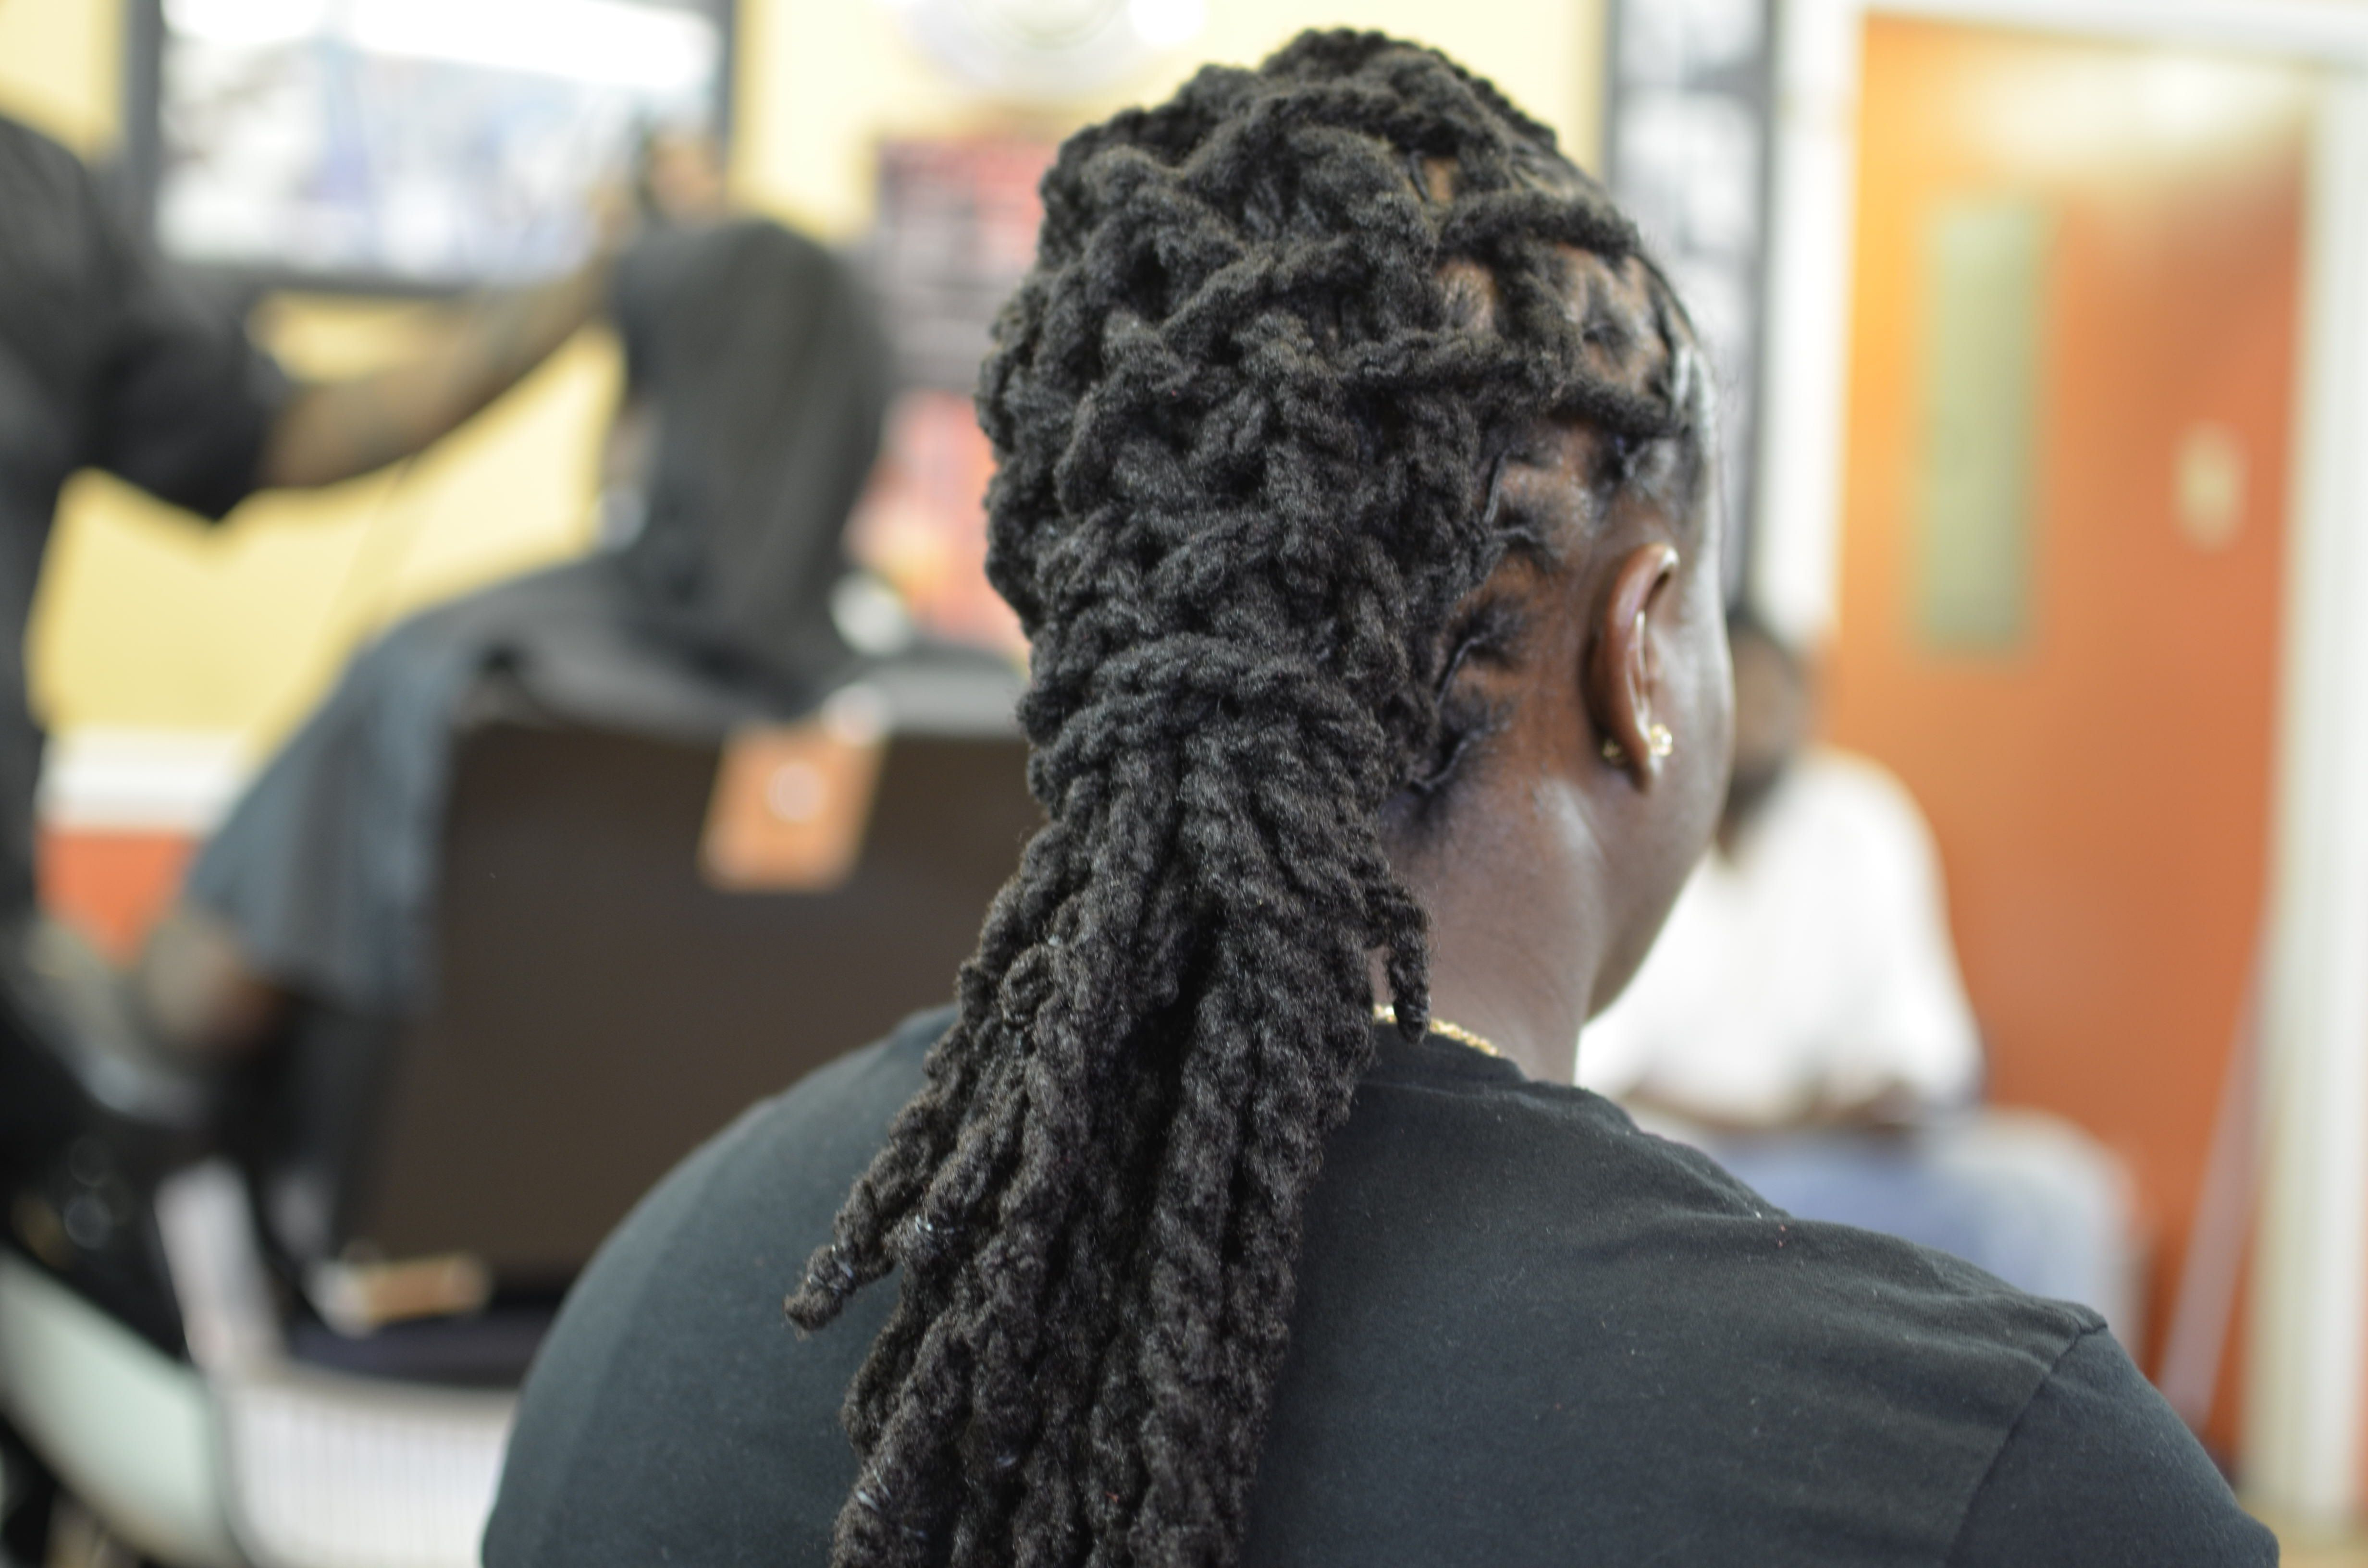 Dreadlock Styles Double Strand , Two Strand Twist In A Throughout 2019 Tightly Coiled Gray Dreads Bun Hairstyles (View 4 of 20)